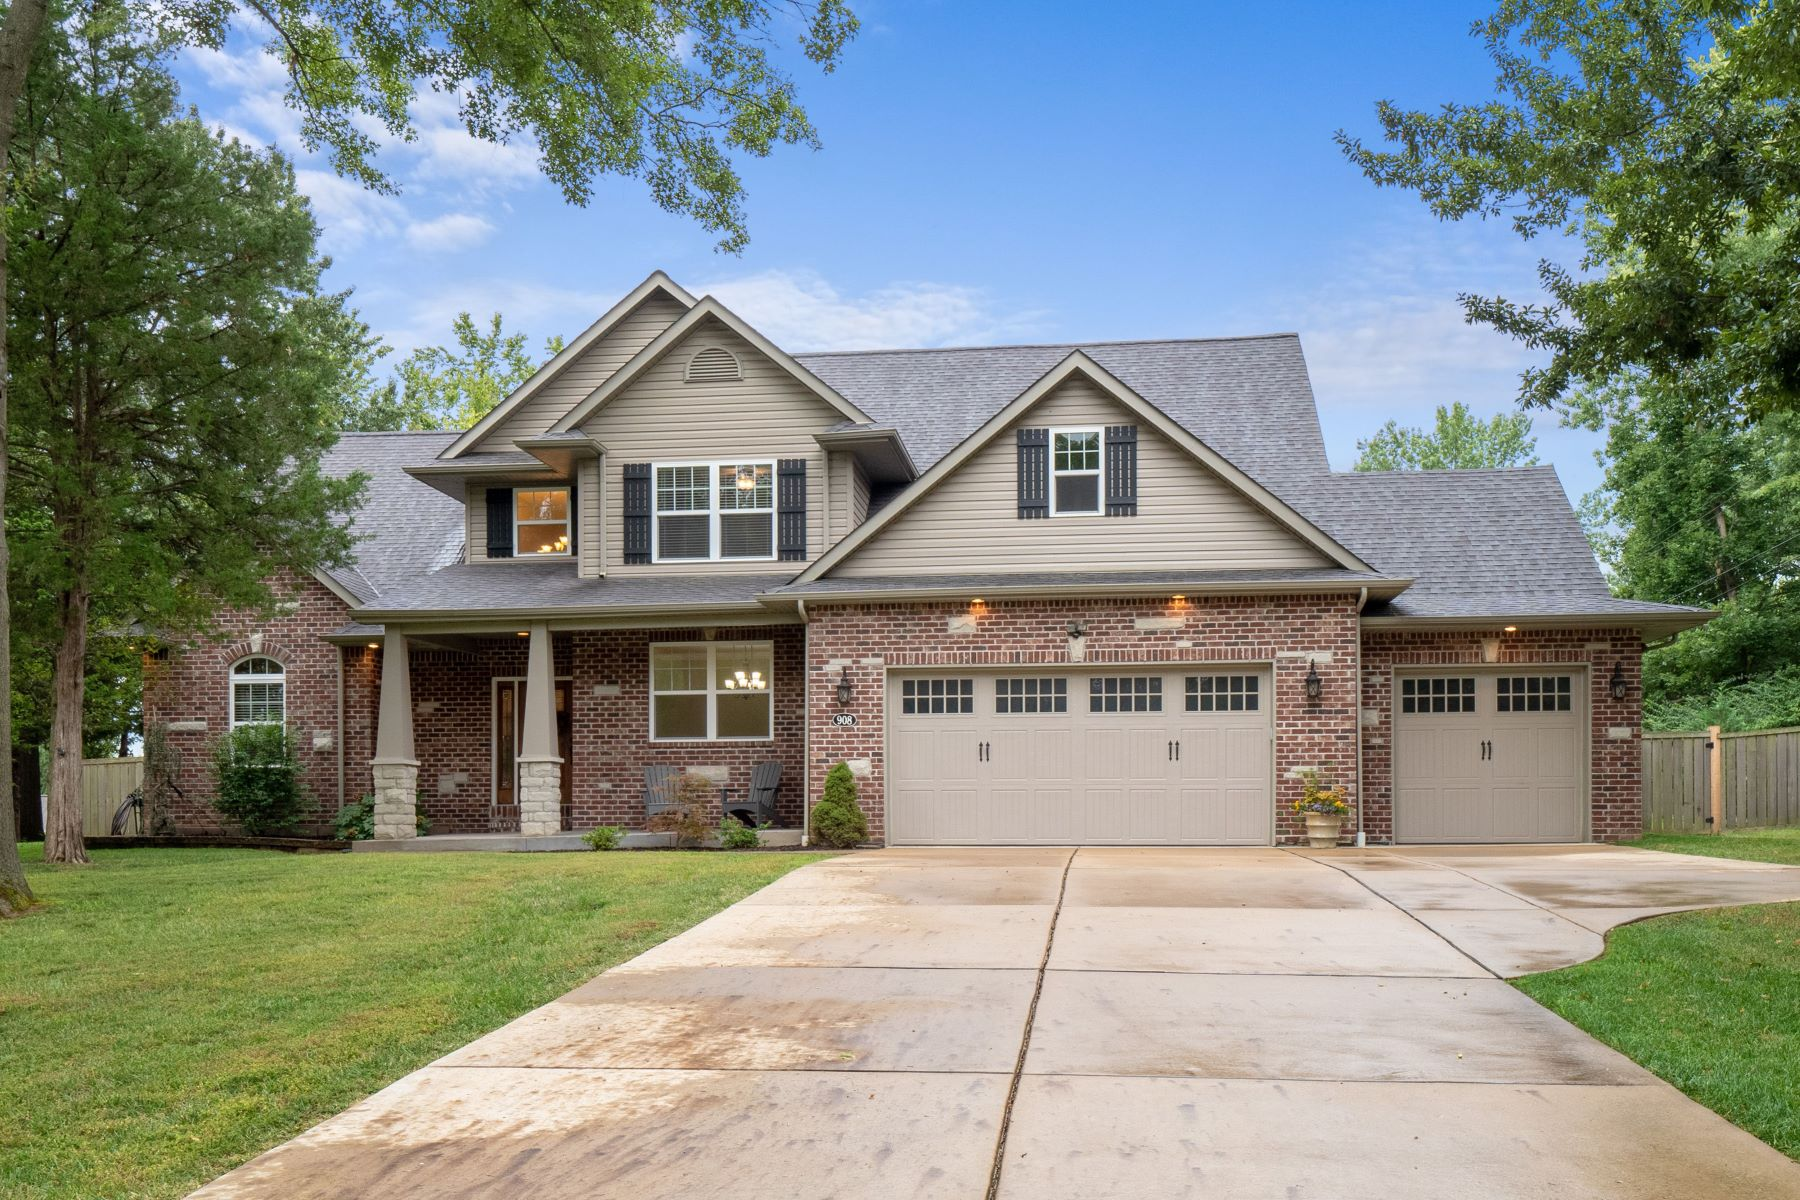 Property for Sale at Beautiful Executive Home 908 Coronet Drive Ballwin, Missouri 63011 United States